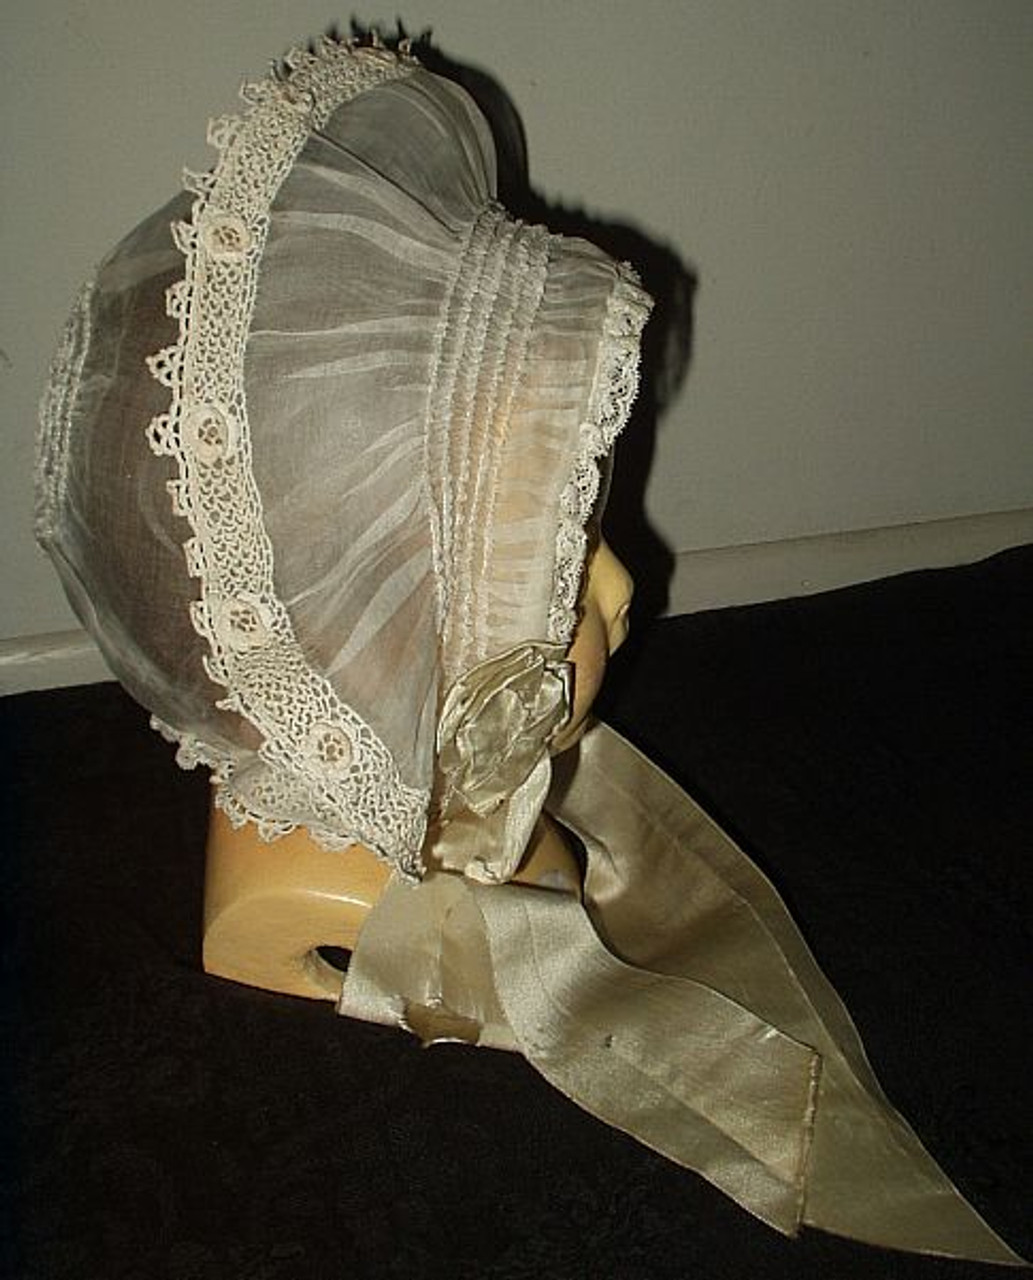 Antique Vintage Edwardian 1920s Organdy Irish Crochet Lace Baby Bonnet